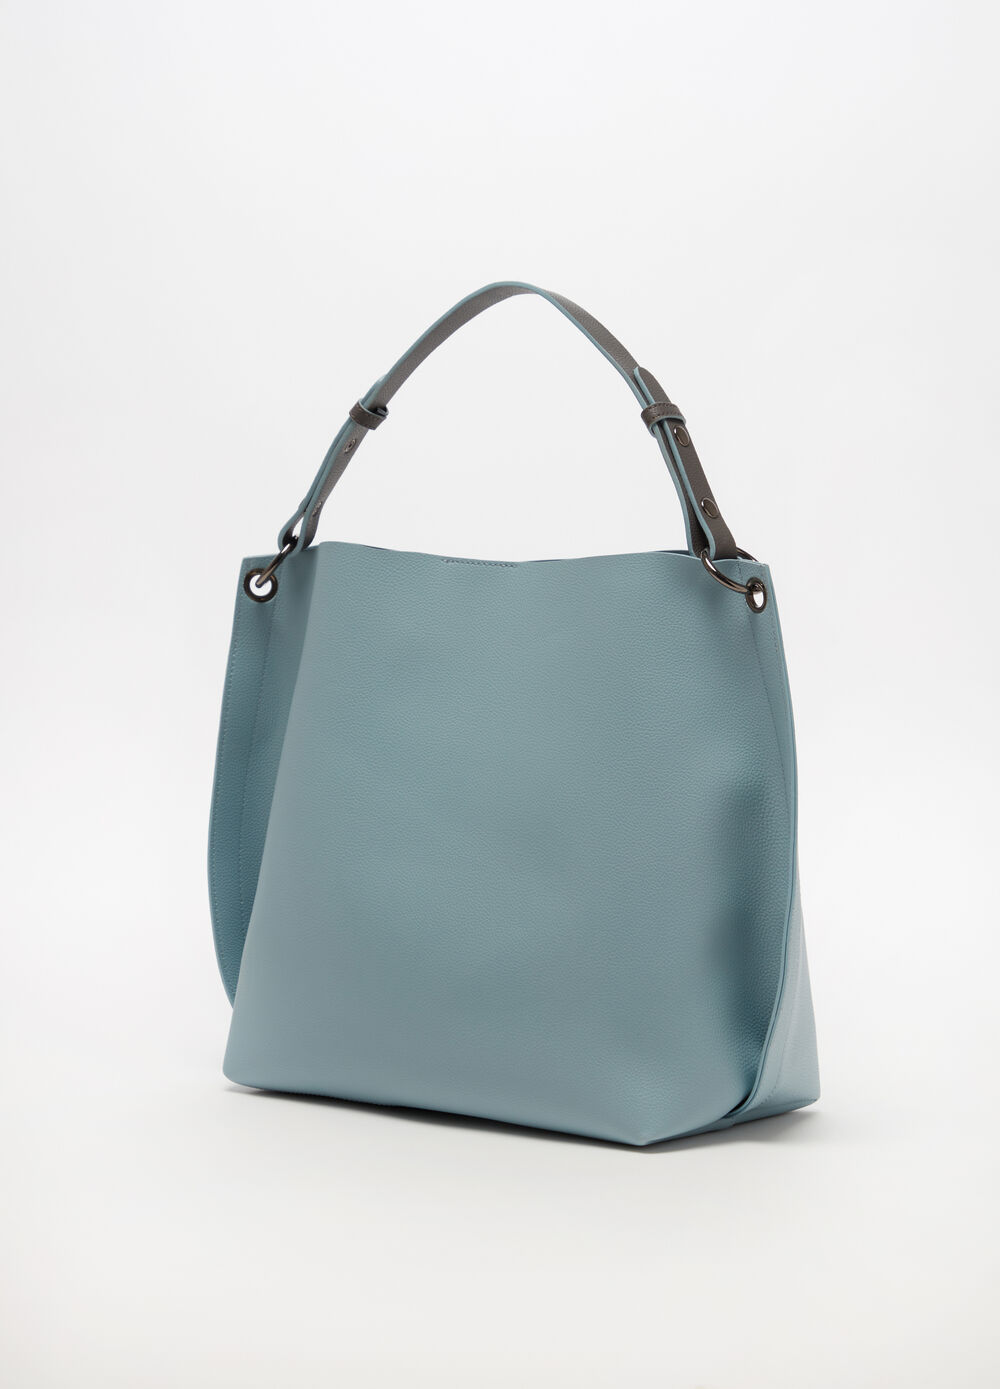 Two-tone hobo bag with internal shoulder strap